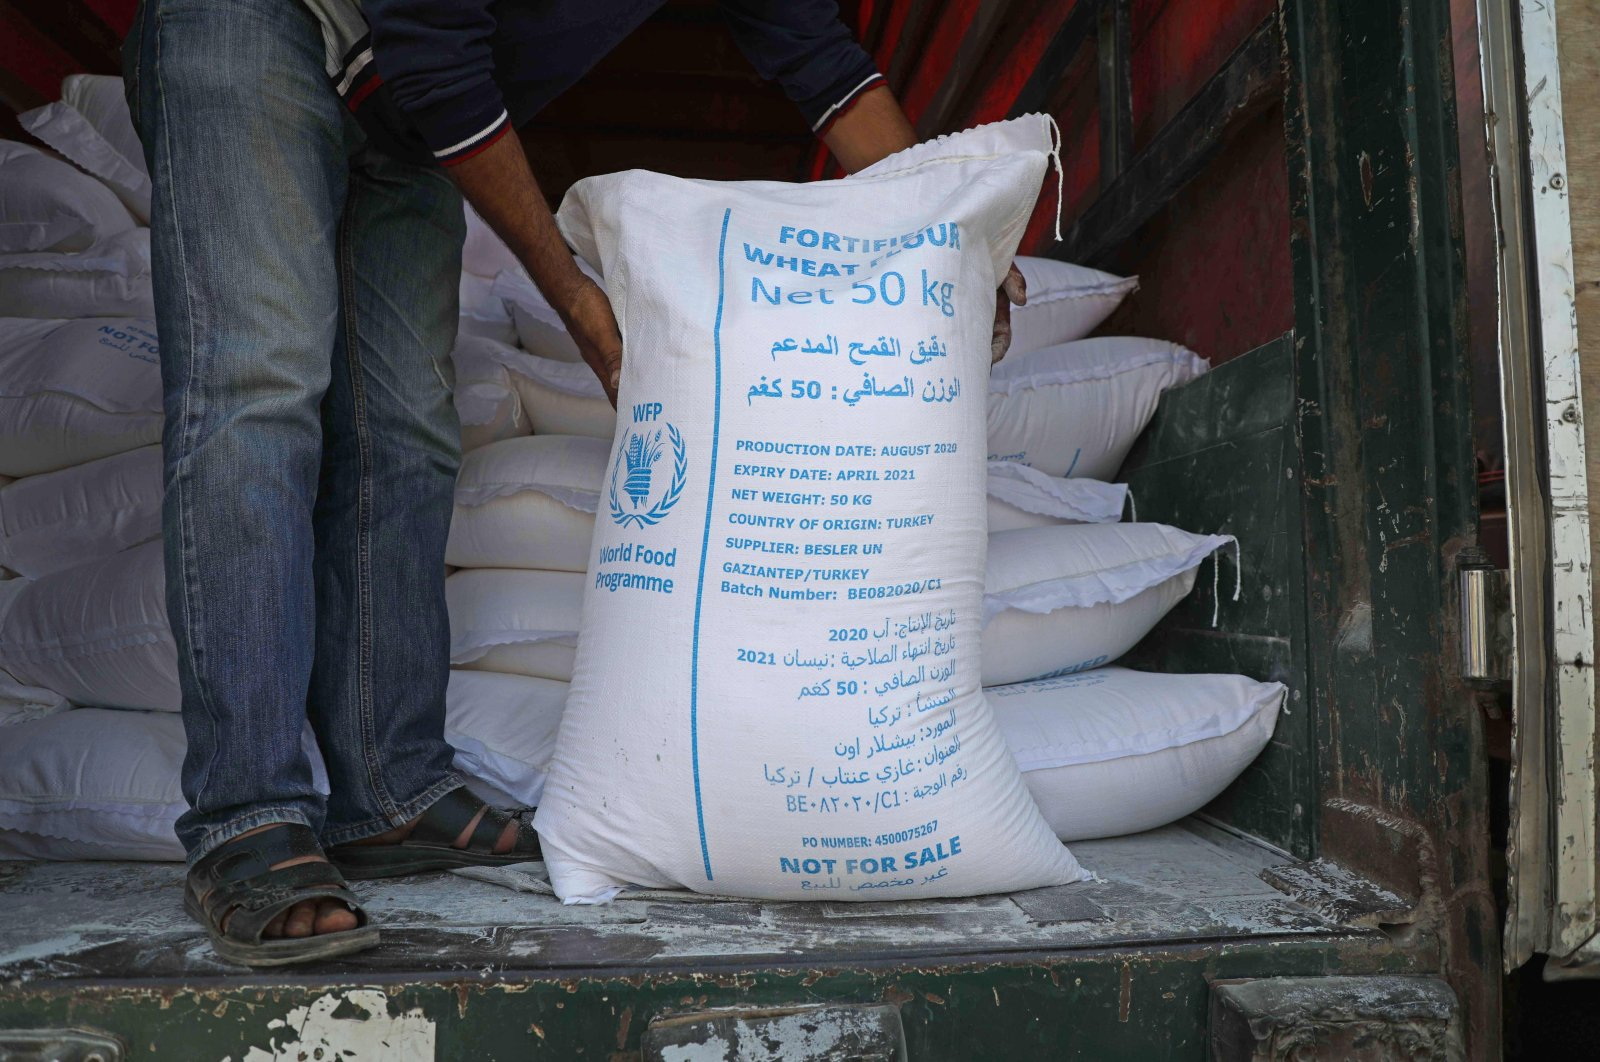 A man unloads bags of fortified flour from an international humanitarian aid truck that crossed into Syria's northwestern Idlib province through the Bab al-Hawa border crossing with Turkey, Sept. 7, 2020. (AFP Photo)